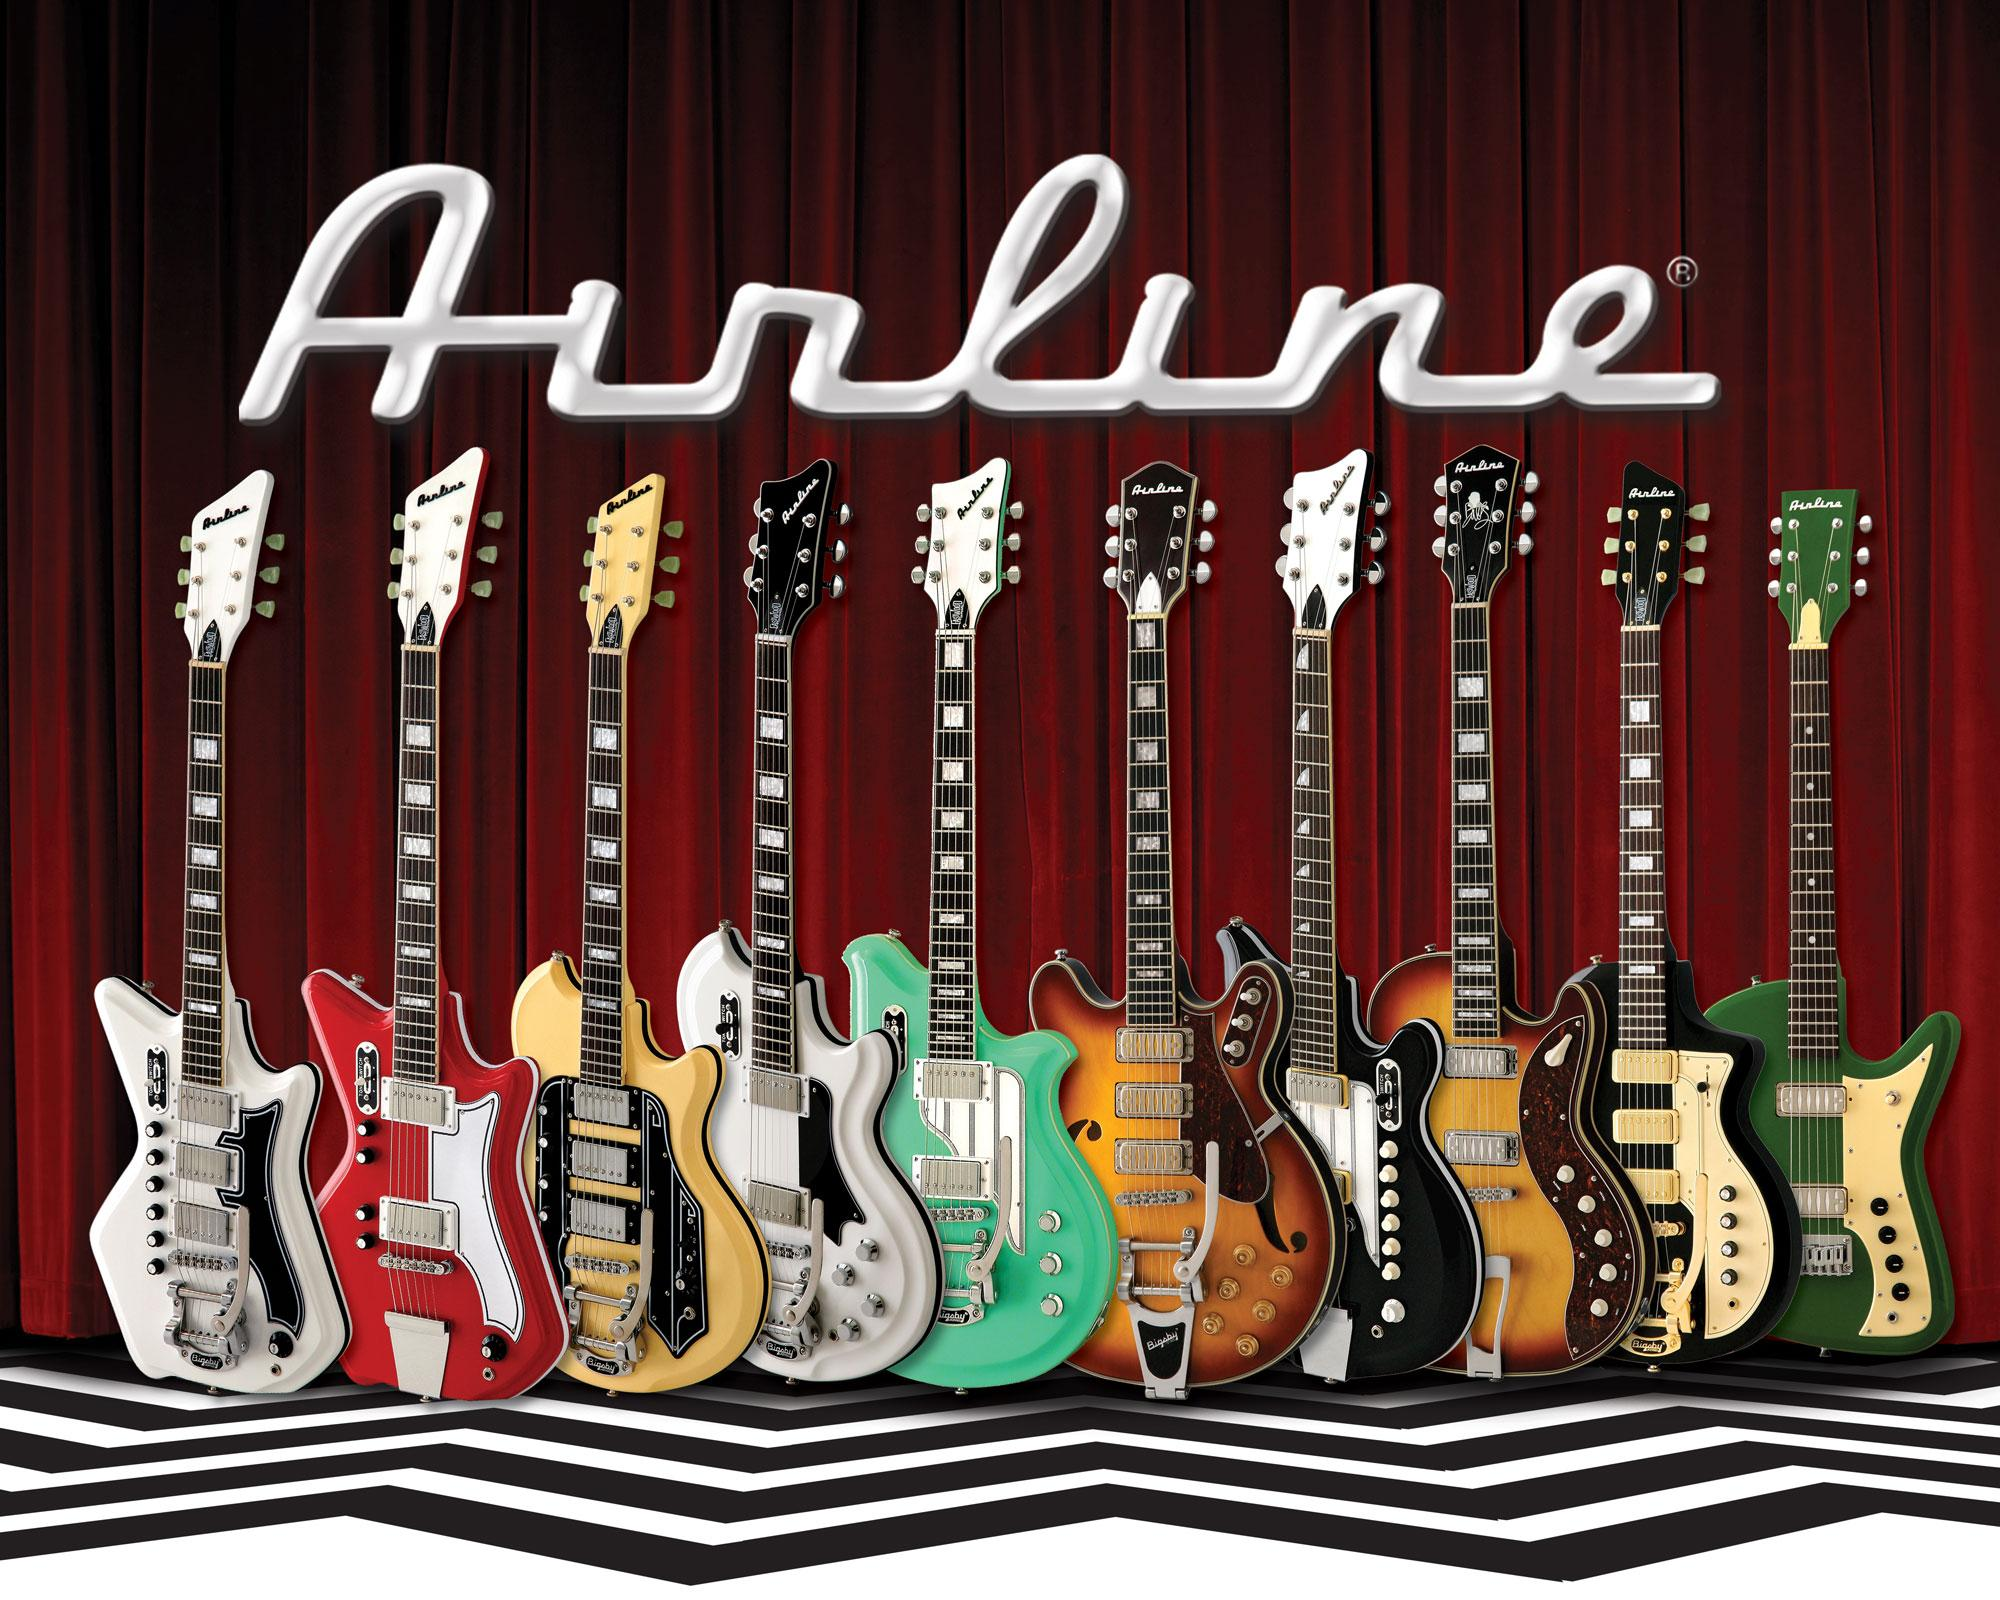 dating airline guitars 1960's vintage guitars and so is the case with the airline guitars i haven't been able to find out much about dating them, so far.